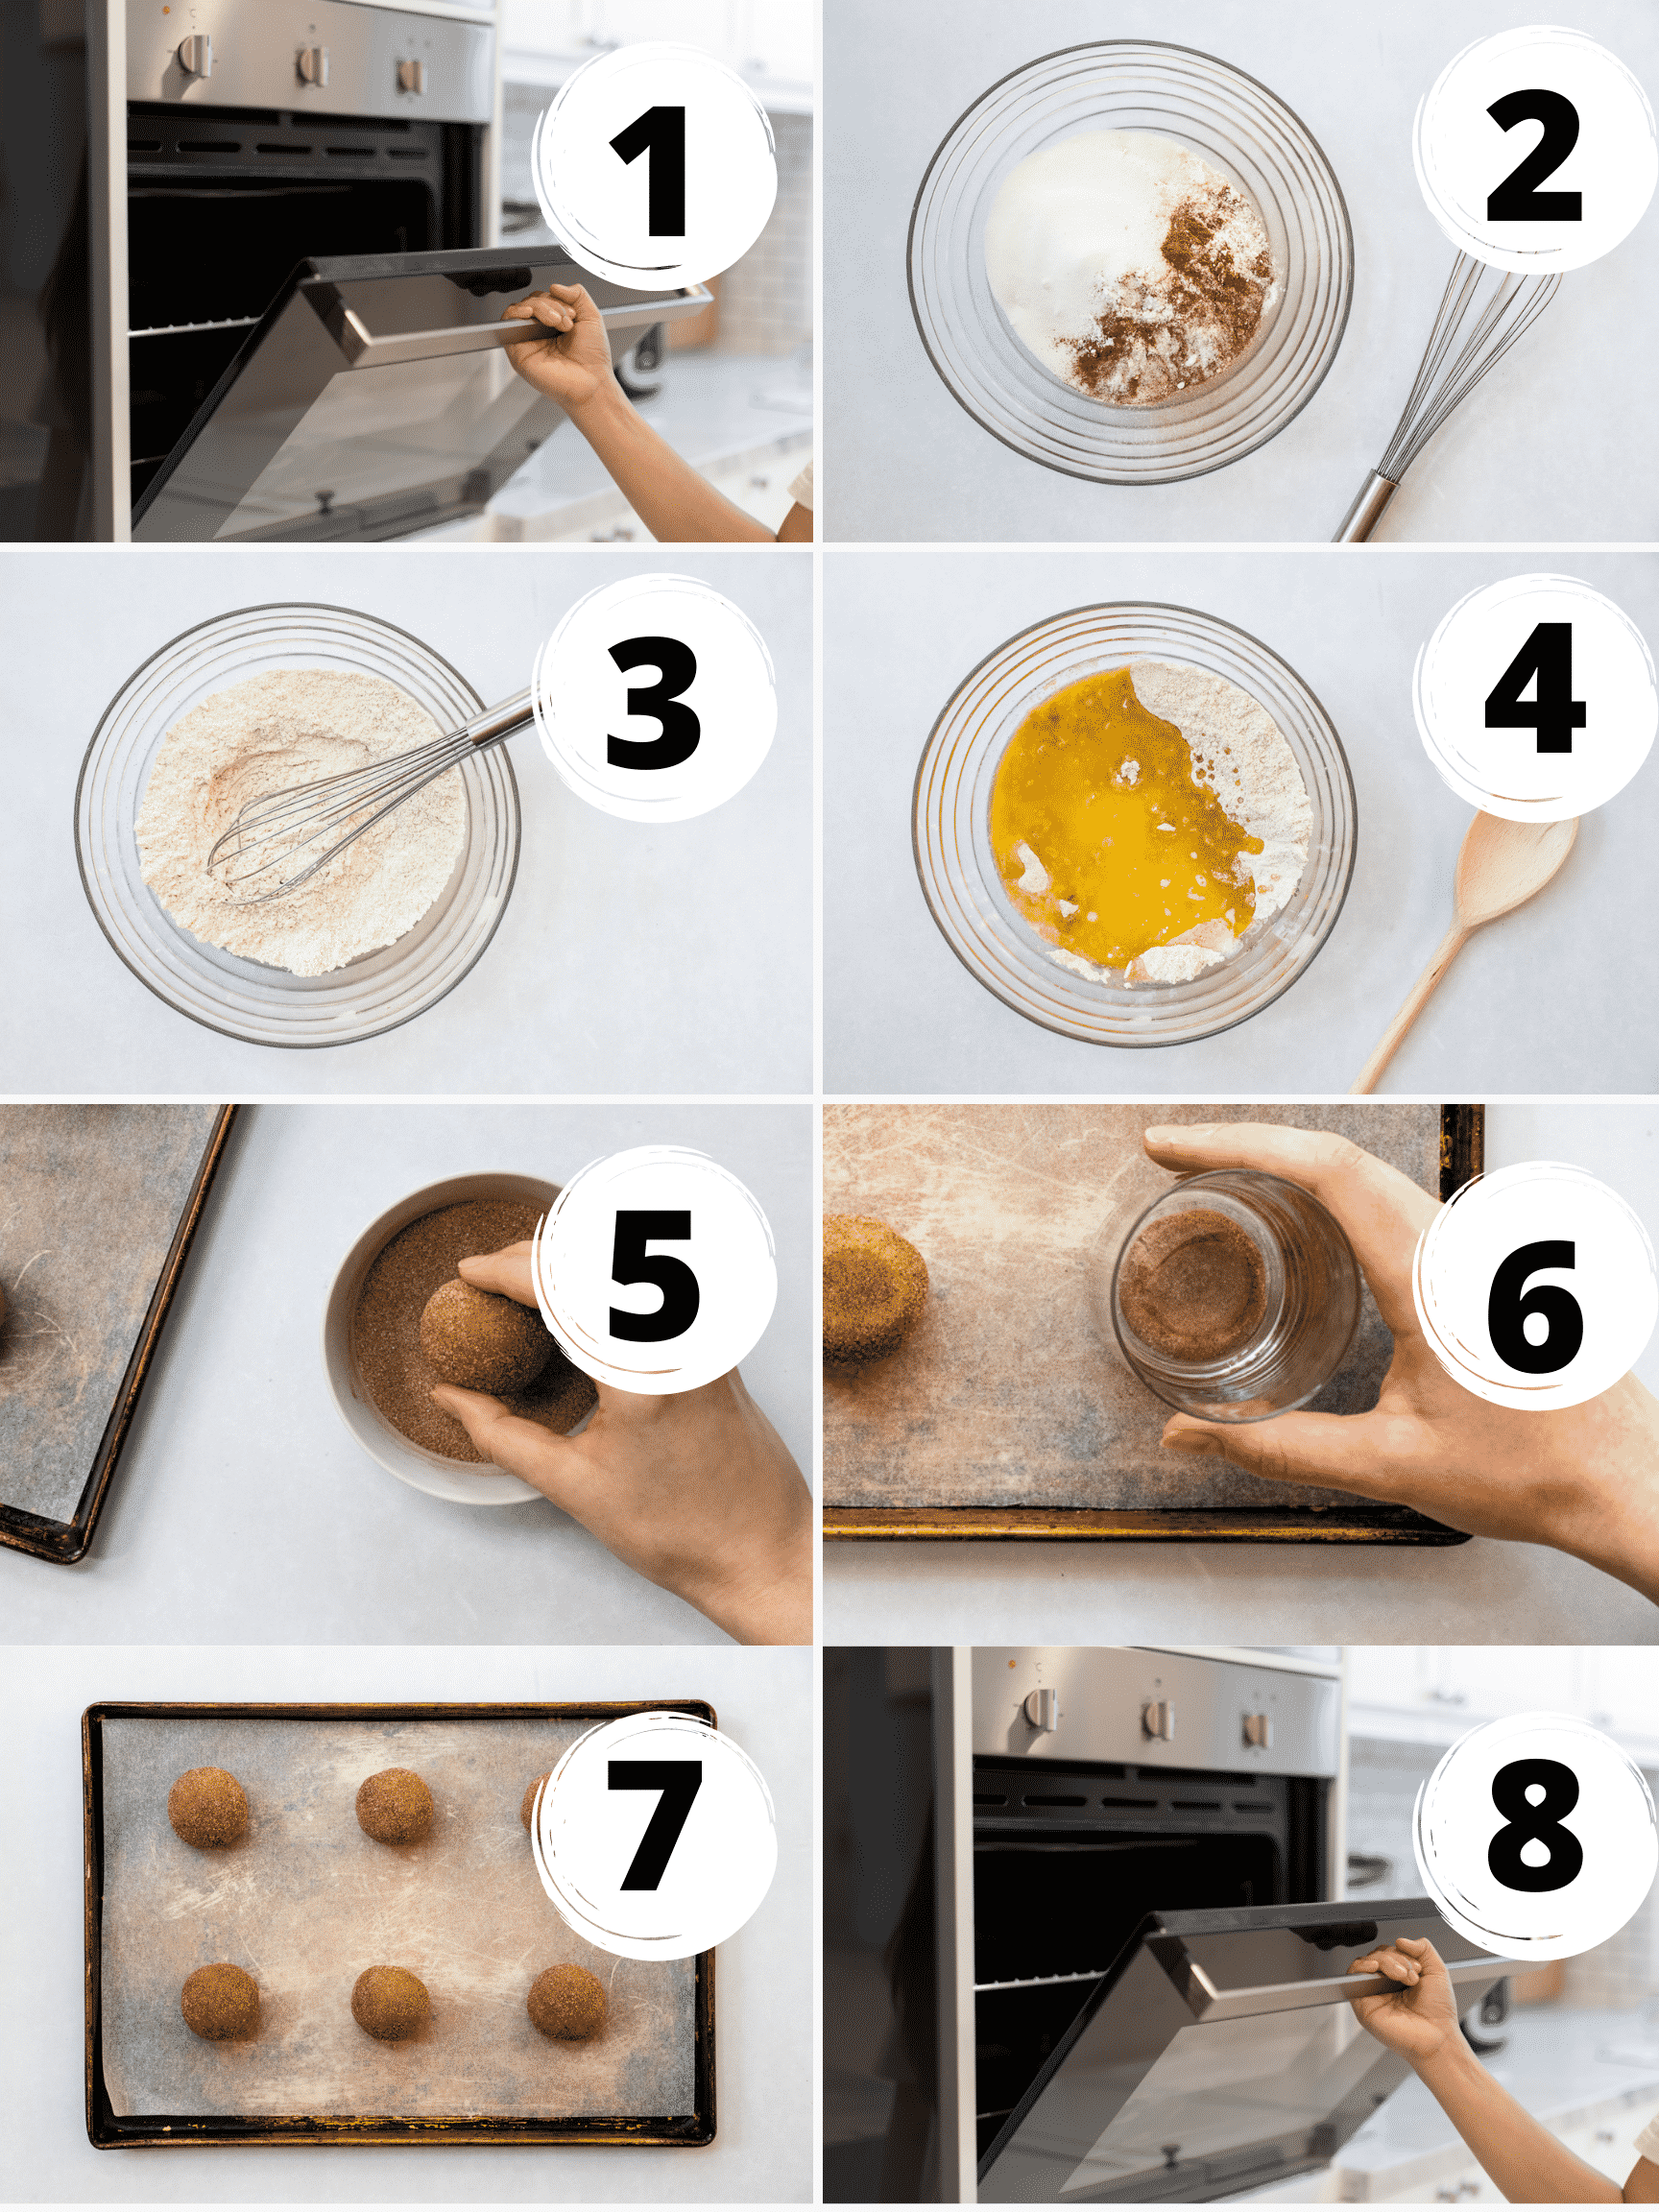 Eight steps to make vegan snickerdoodle cookies with almond flour